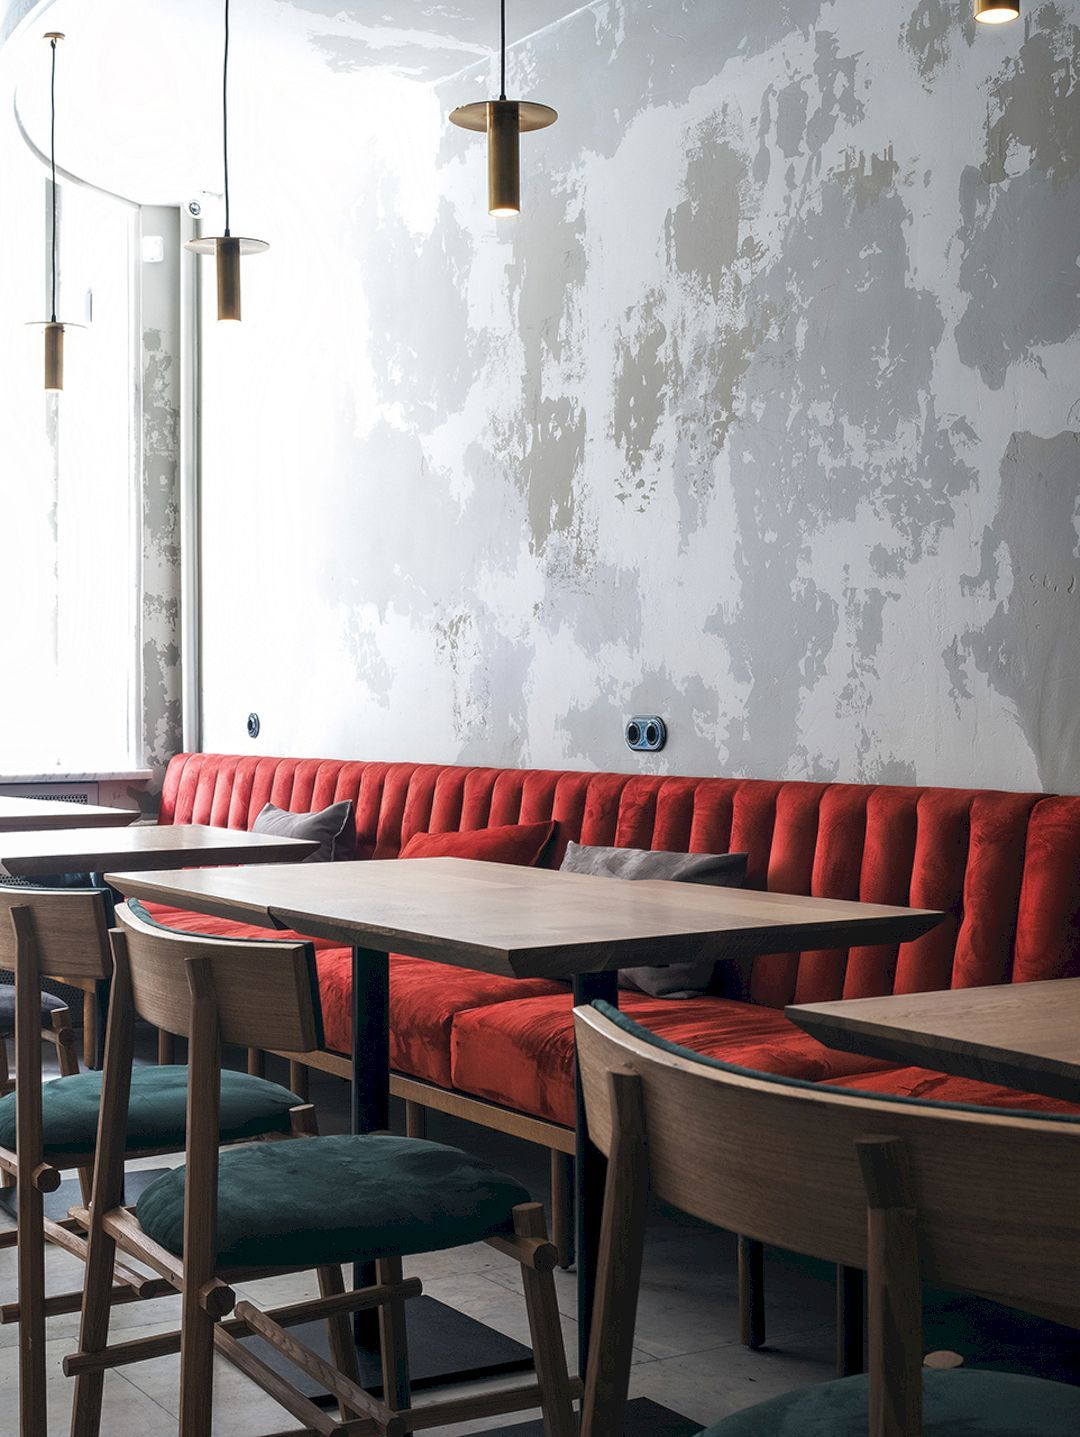 MADE IN CHINA Cafe: Modern Interior Design Of An Asian